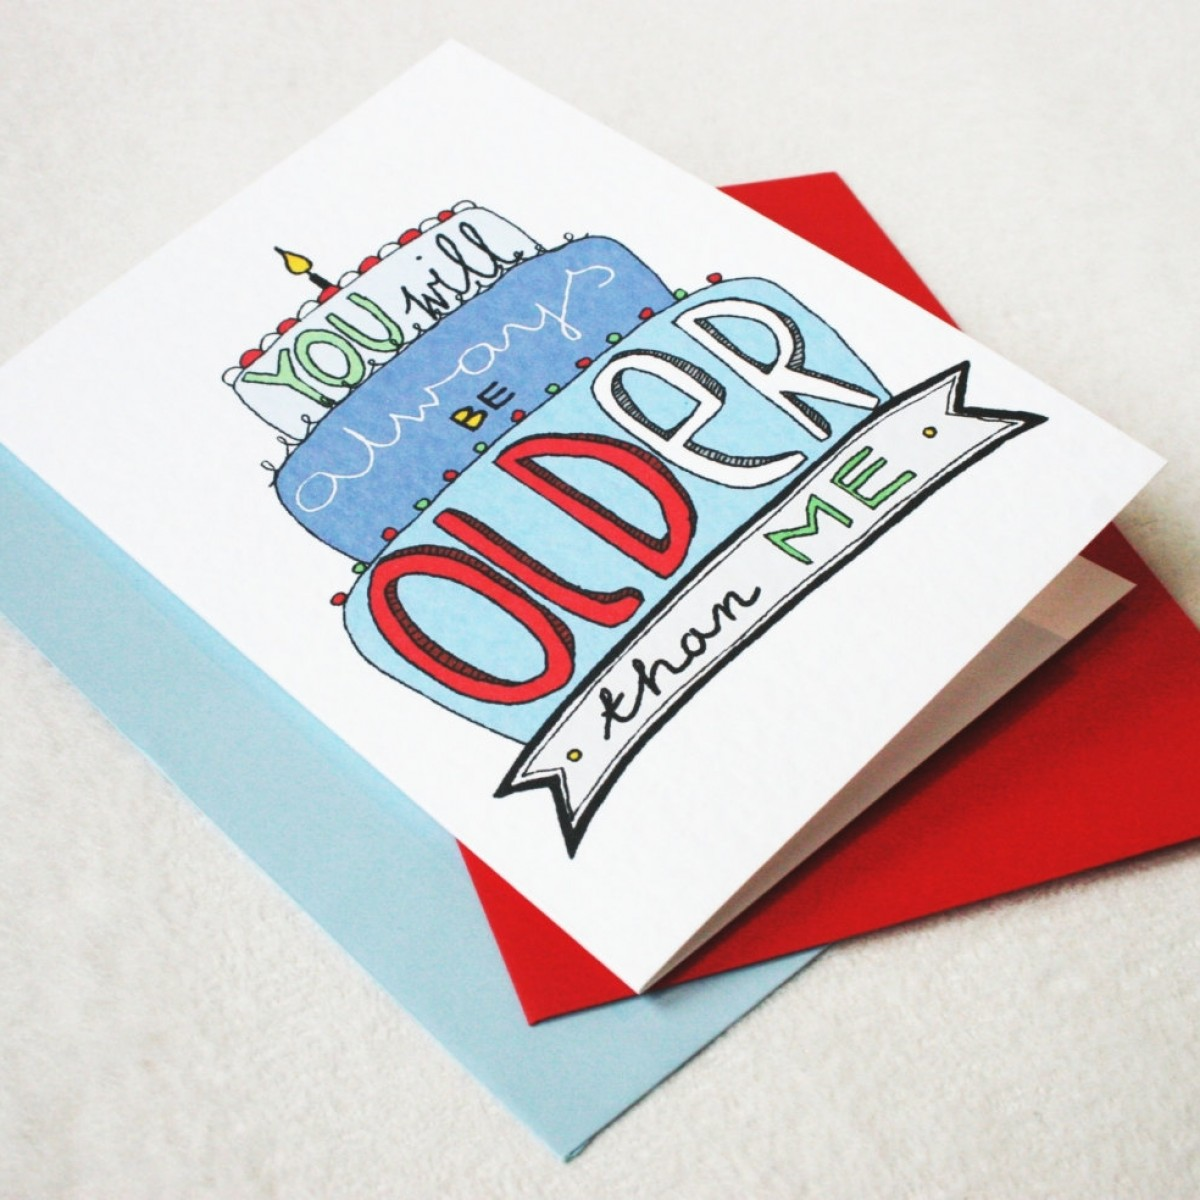 birthday pictures to draw on a birthday card ; How-To-Draw-A-Birthday-Card-1